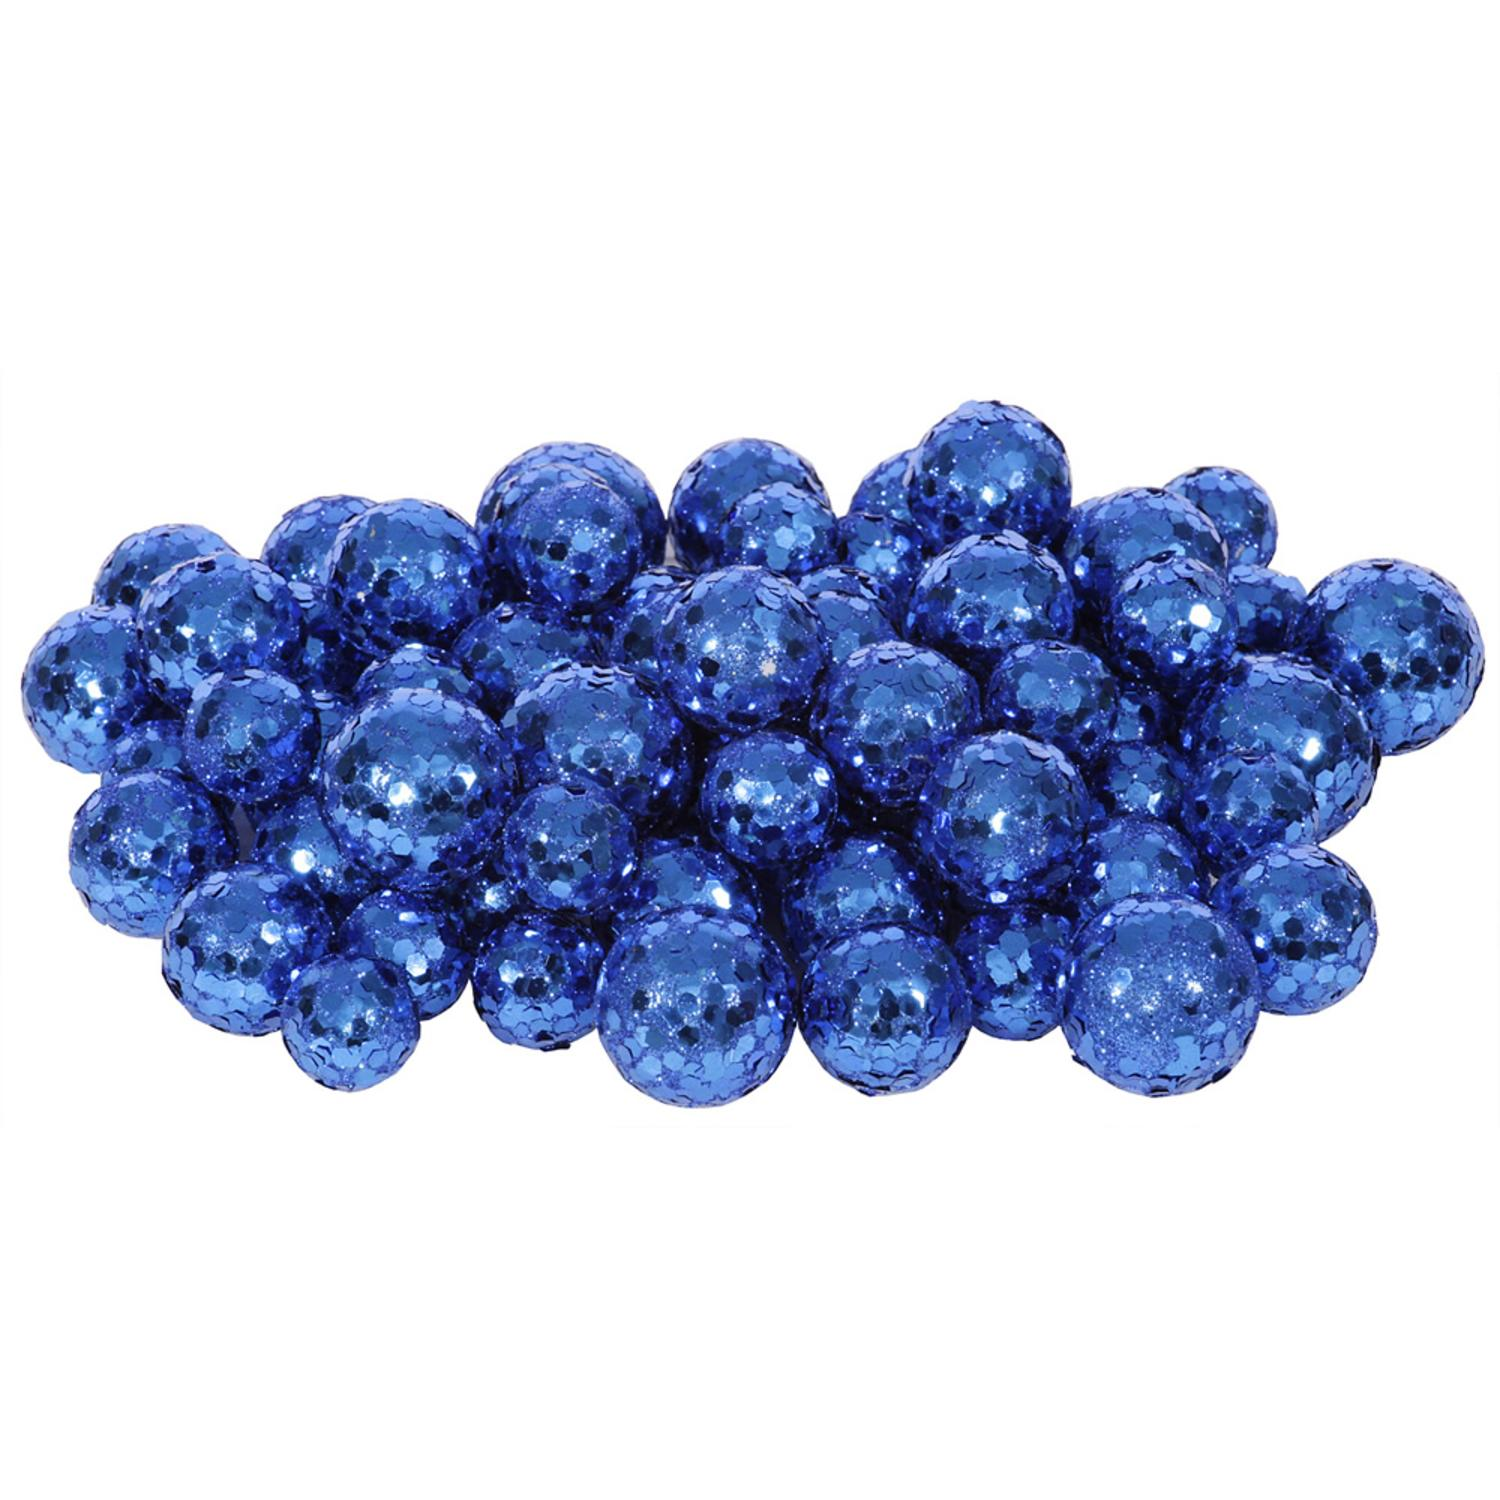 "60ct Blue Sequin and Glitter Christmas Ball Decorations 0.8"" - 1.25"""